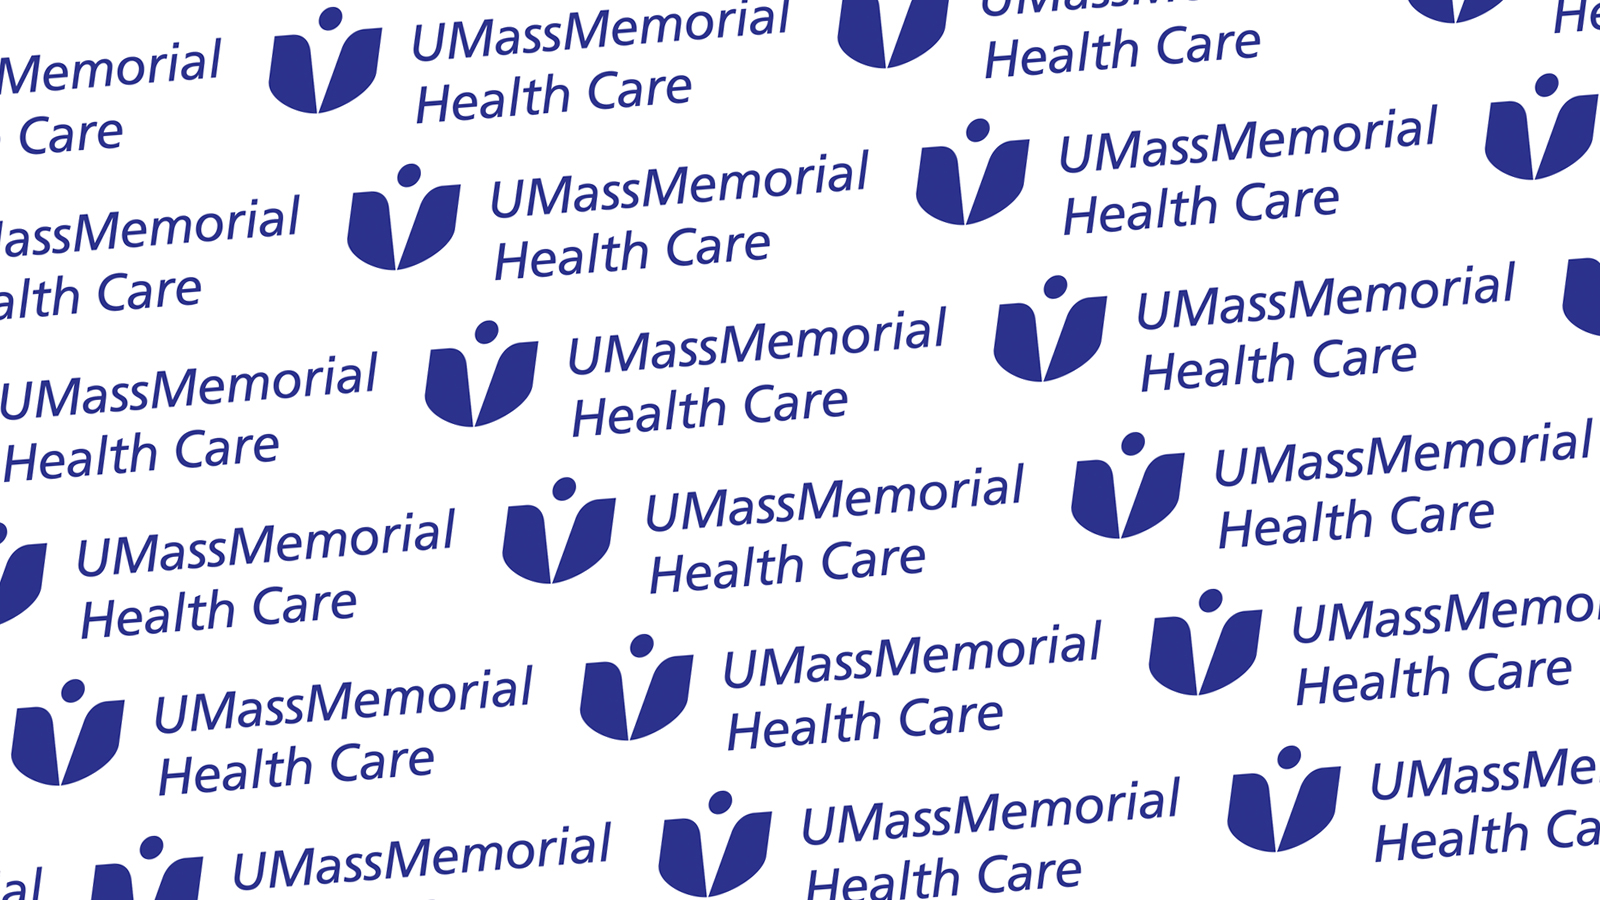 A look at medical system UMass Memorial Health Care (plus ...